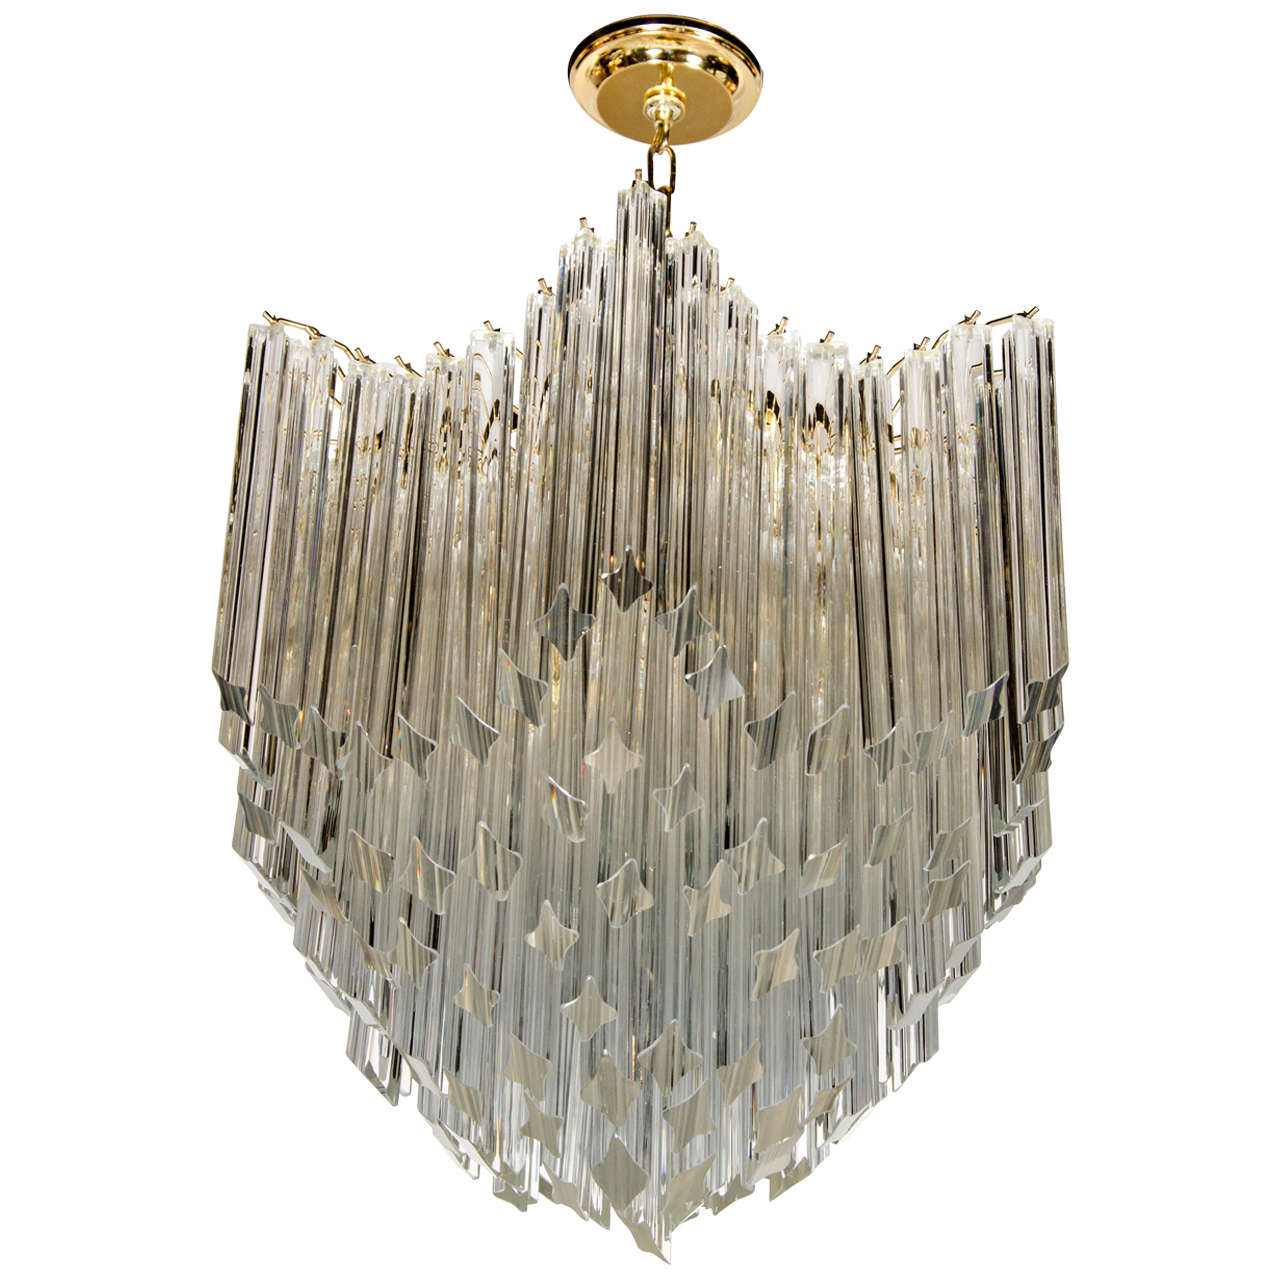 Murano Prism Chandelier: Exceptional Camer Venini Murano Glass Prism Chandelier At